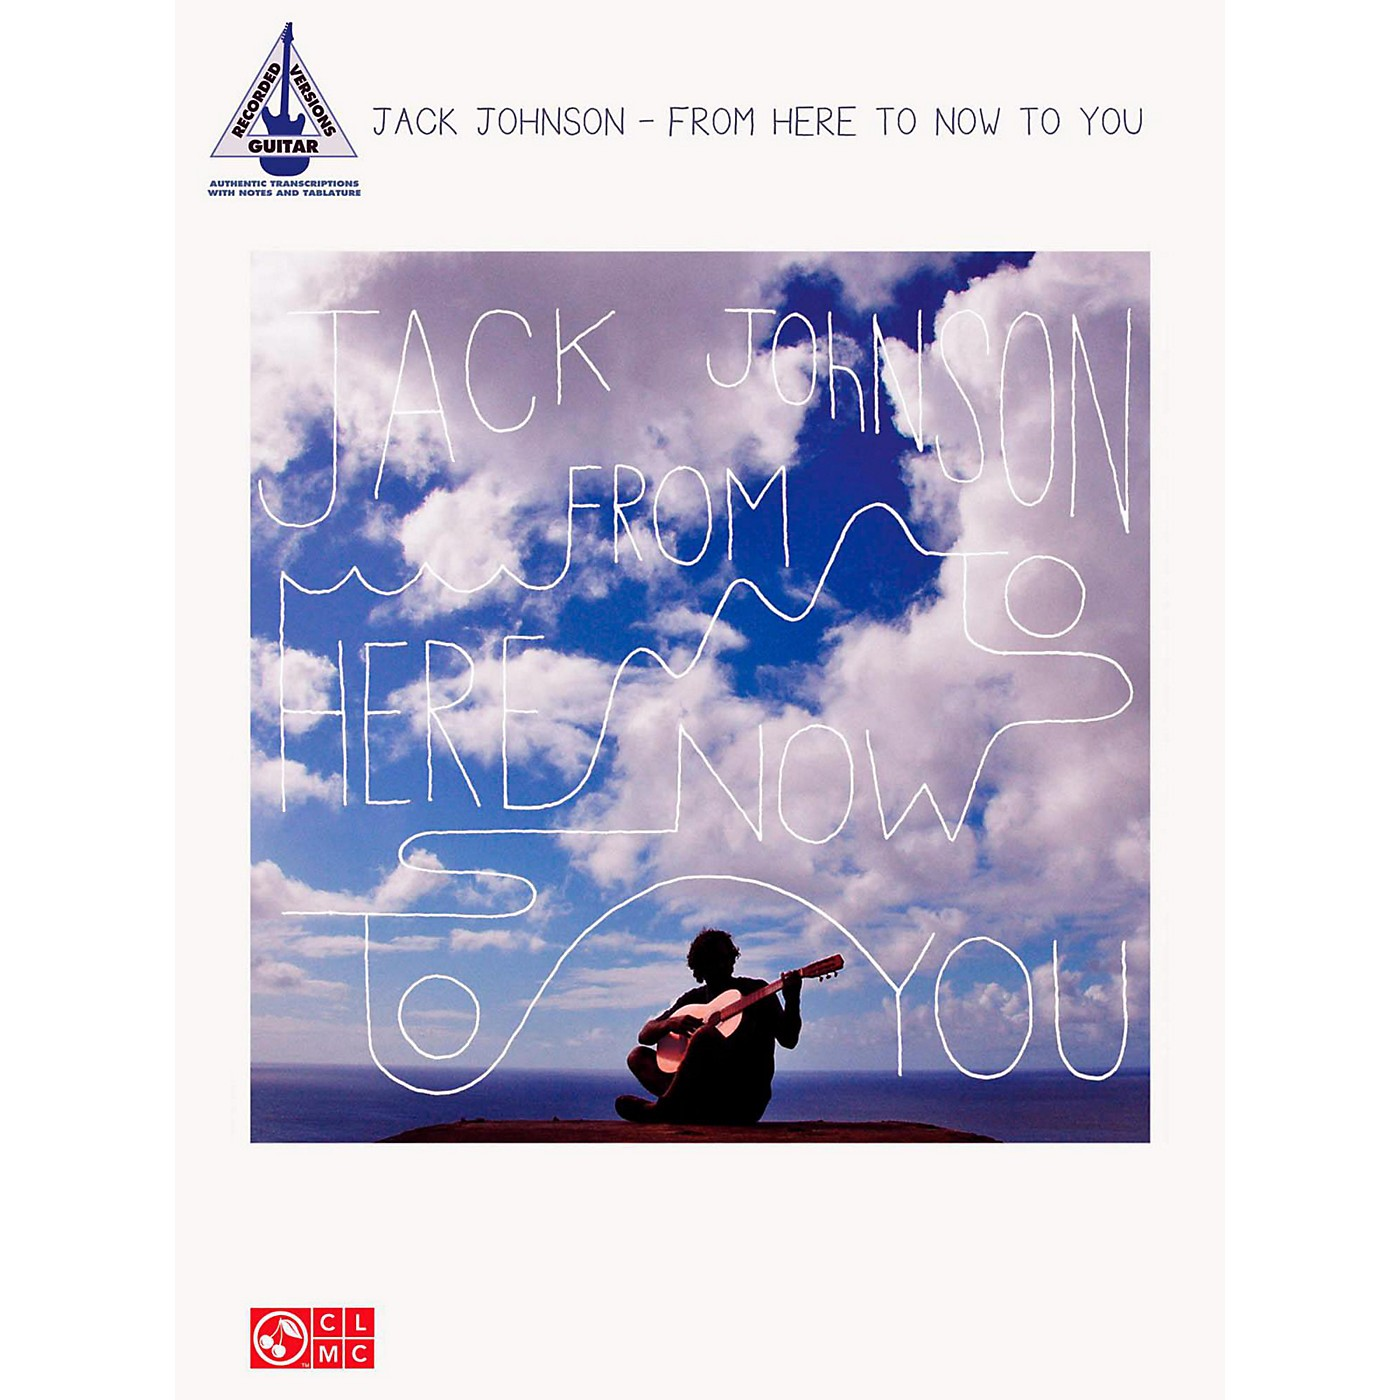 Hal Leonard Jack Johnson - From Here To Now To You Guitar Tab Songbook thumbnail